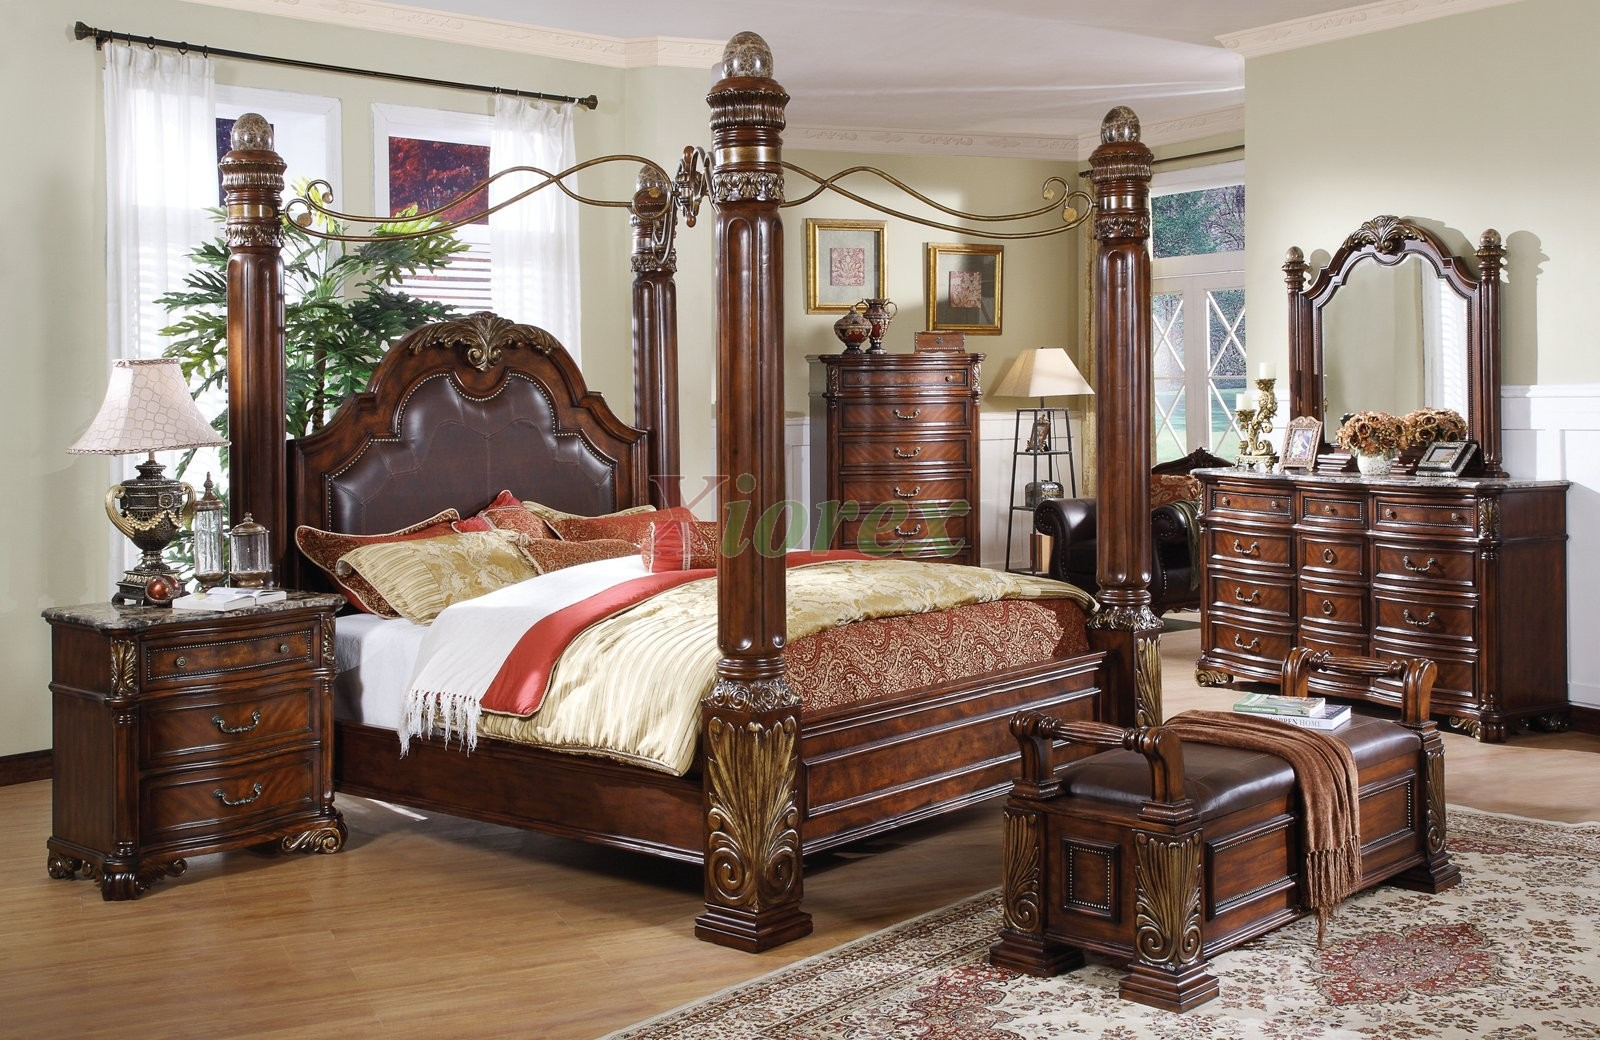 Canopy bed sets bedroom furniture sets w poster canopy for Bedroom furniture